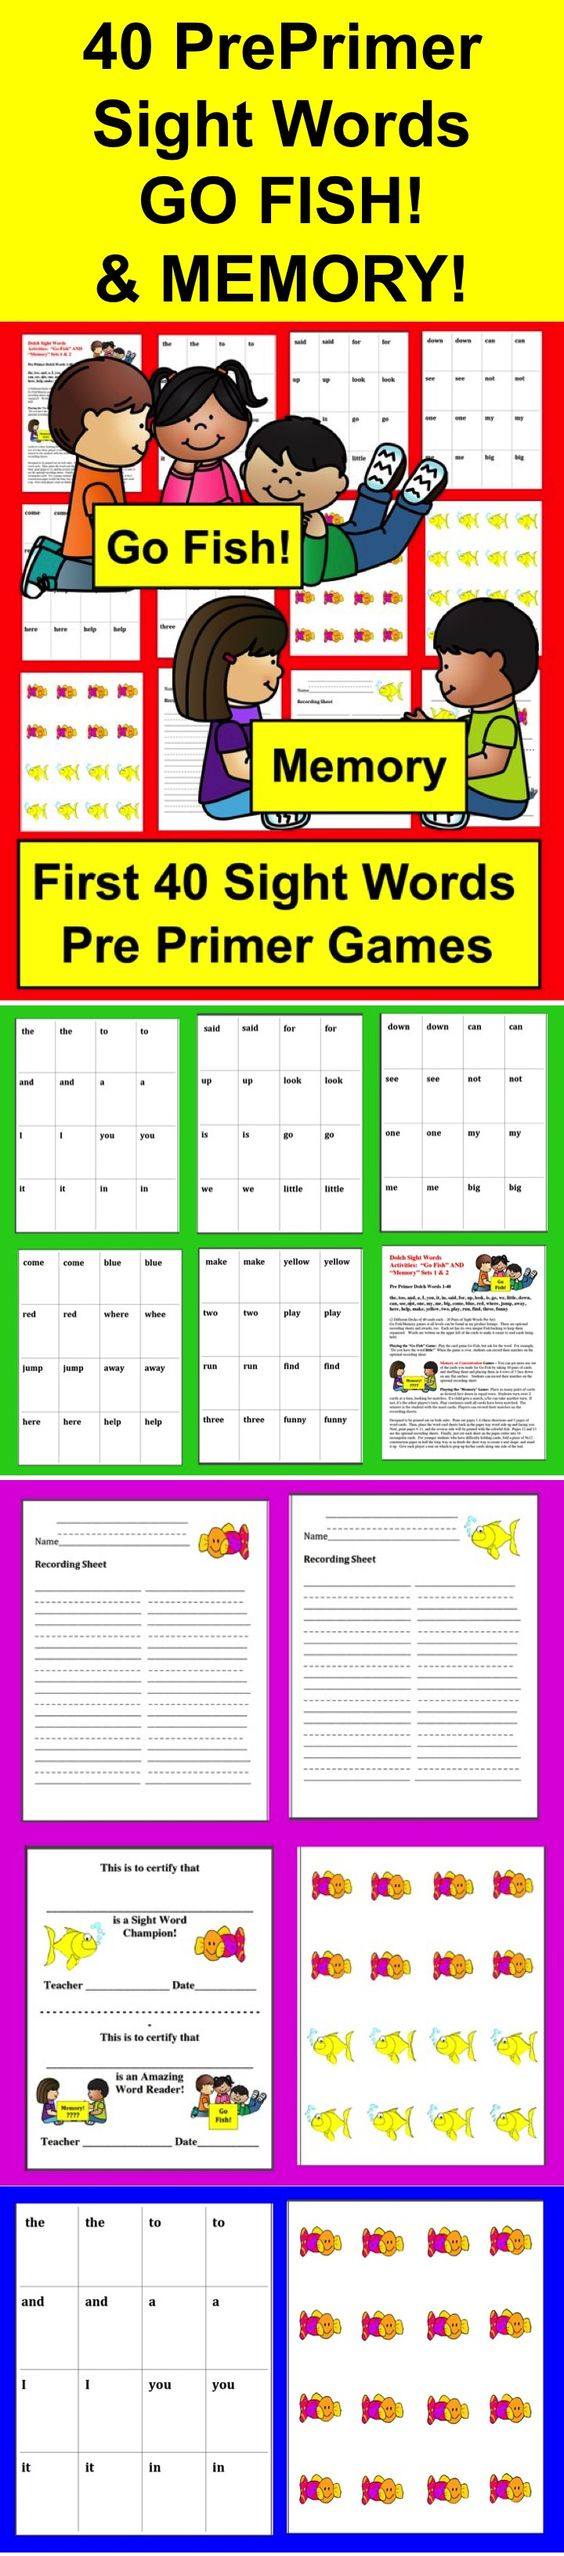 Sight words go fish pre primer play run dolch sight for How do you play go fish card game